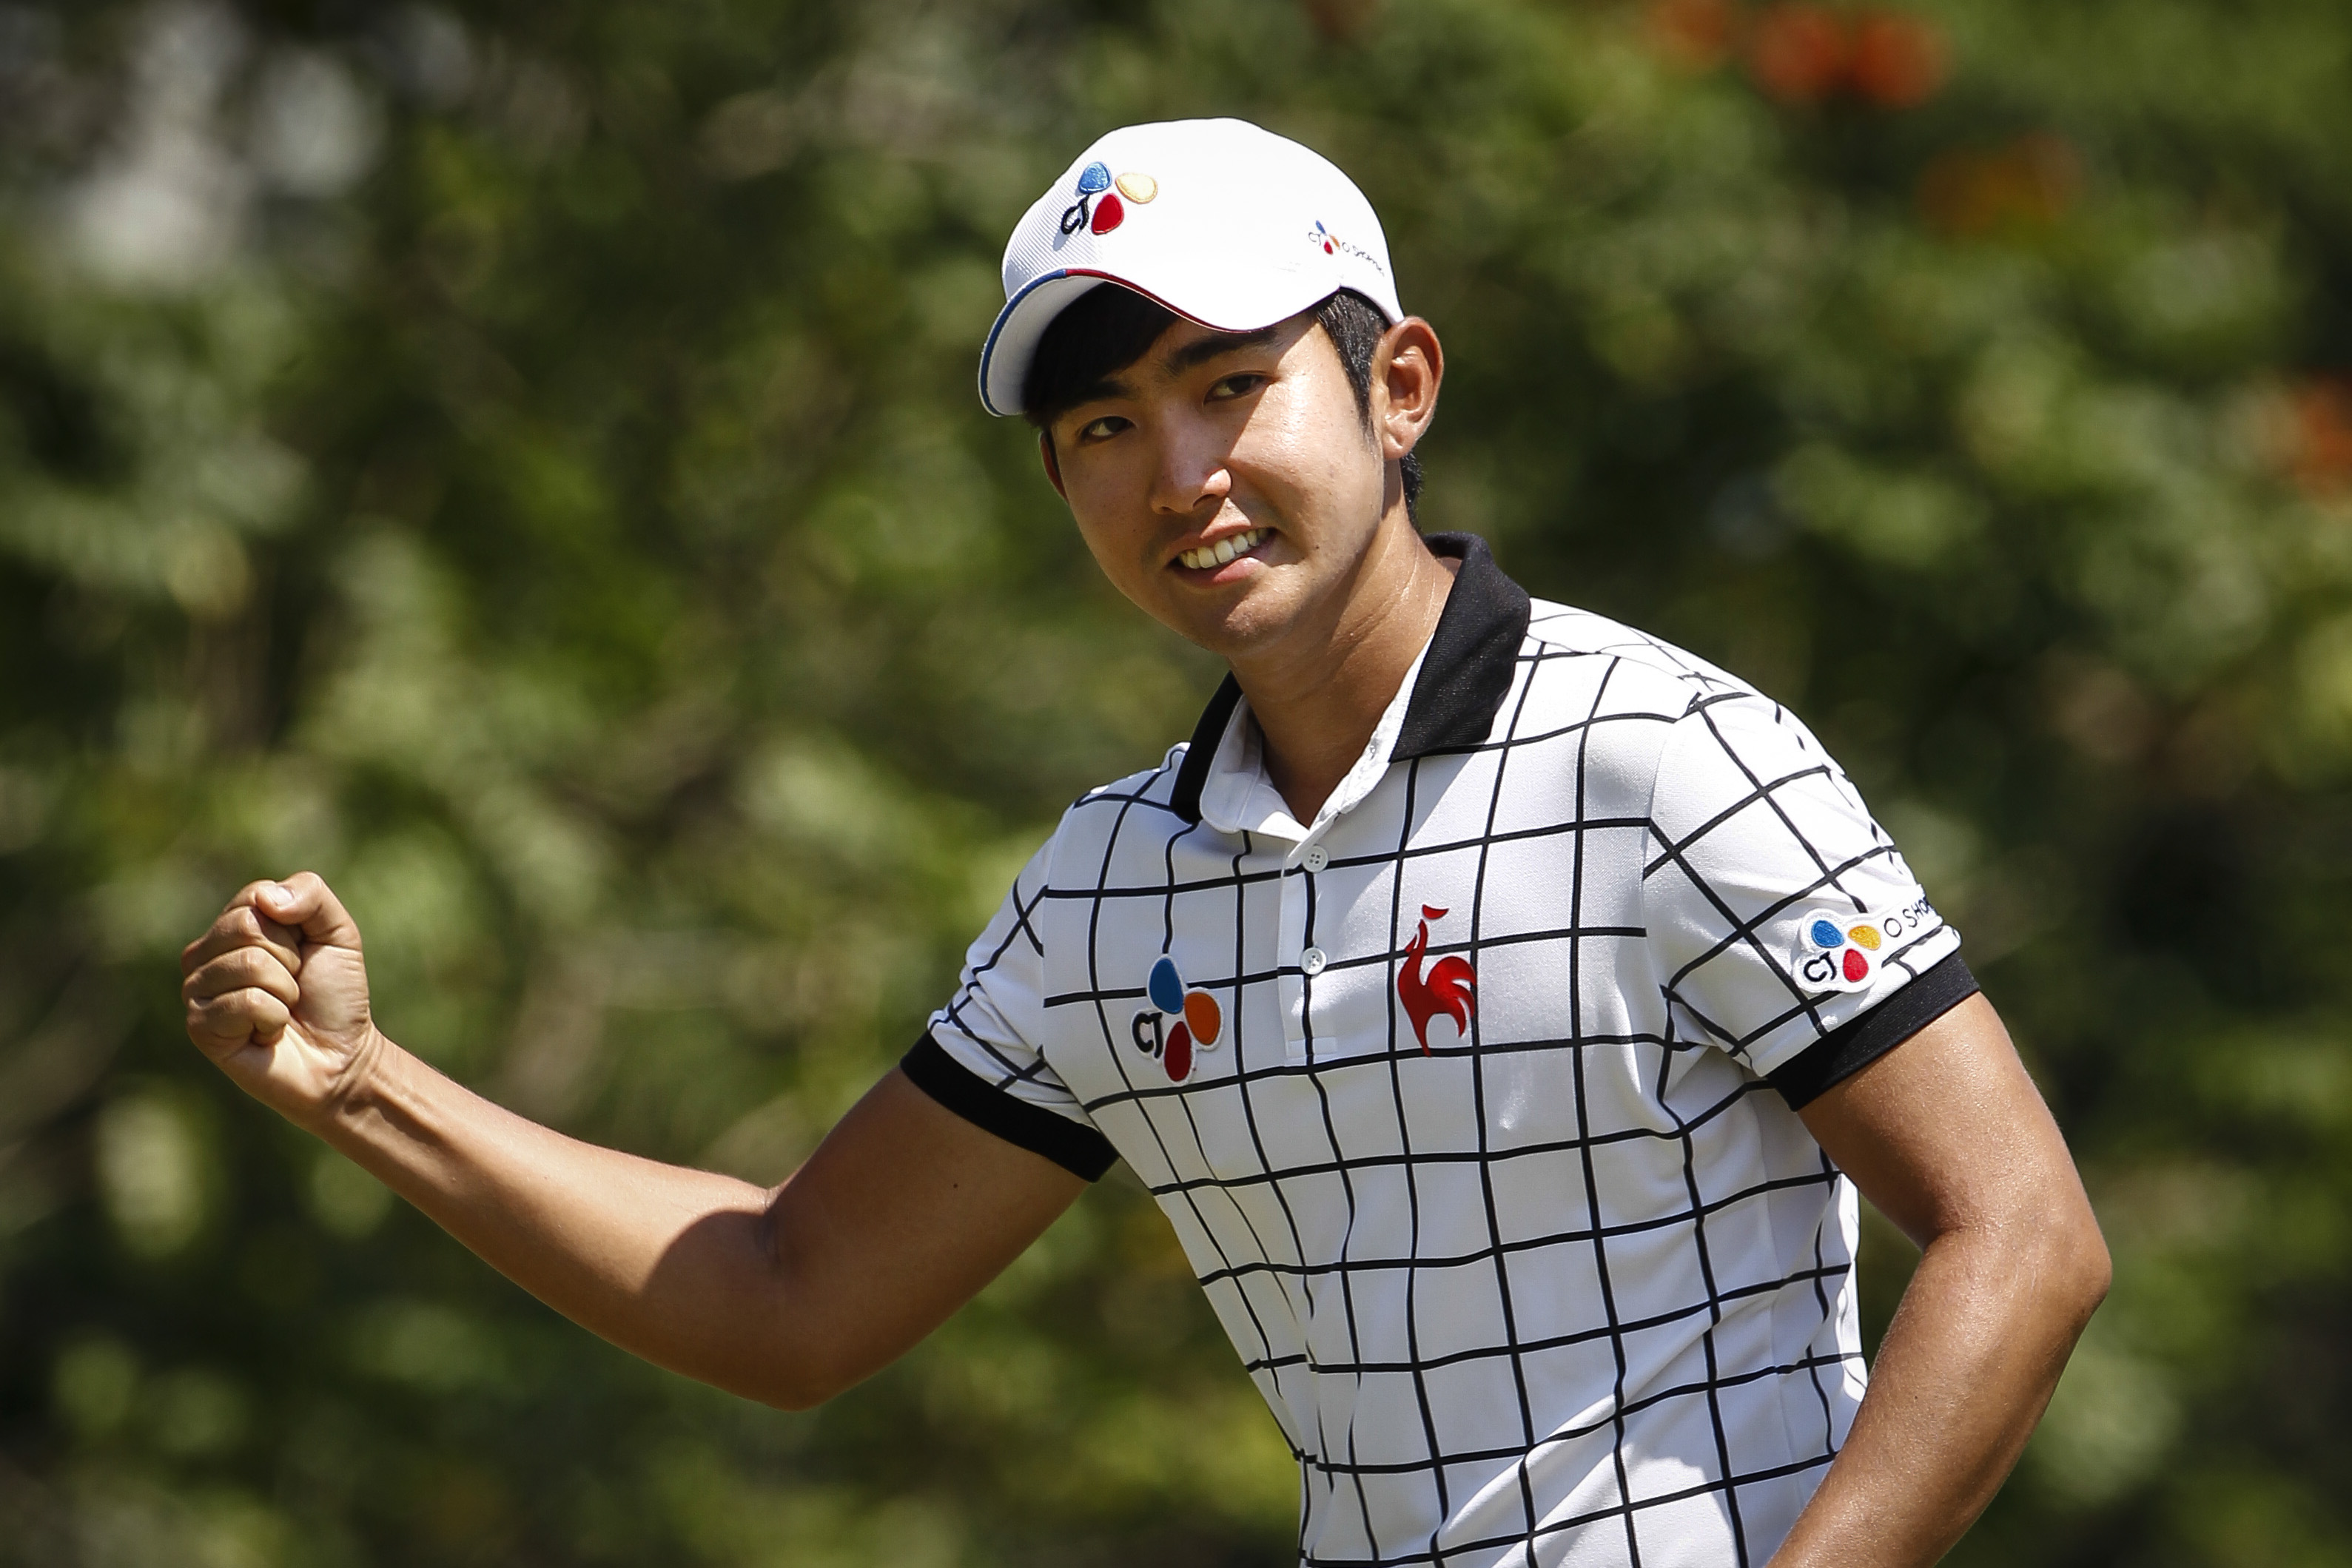 Lee Soo-min of South Korea celebrates after sinking in a birdie putt on the seventh hole during the final round of the Maybank Championship golf tournament in Kuala Lumpur, Malaysia, on Sunday, Feb. 21, 2016. (AP Photo/Joshua Paul)